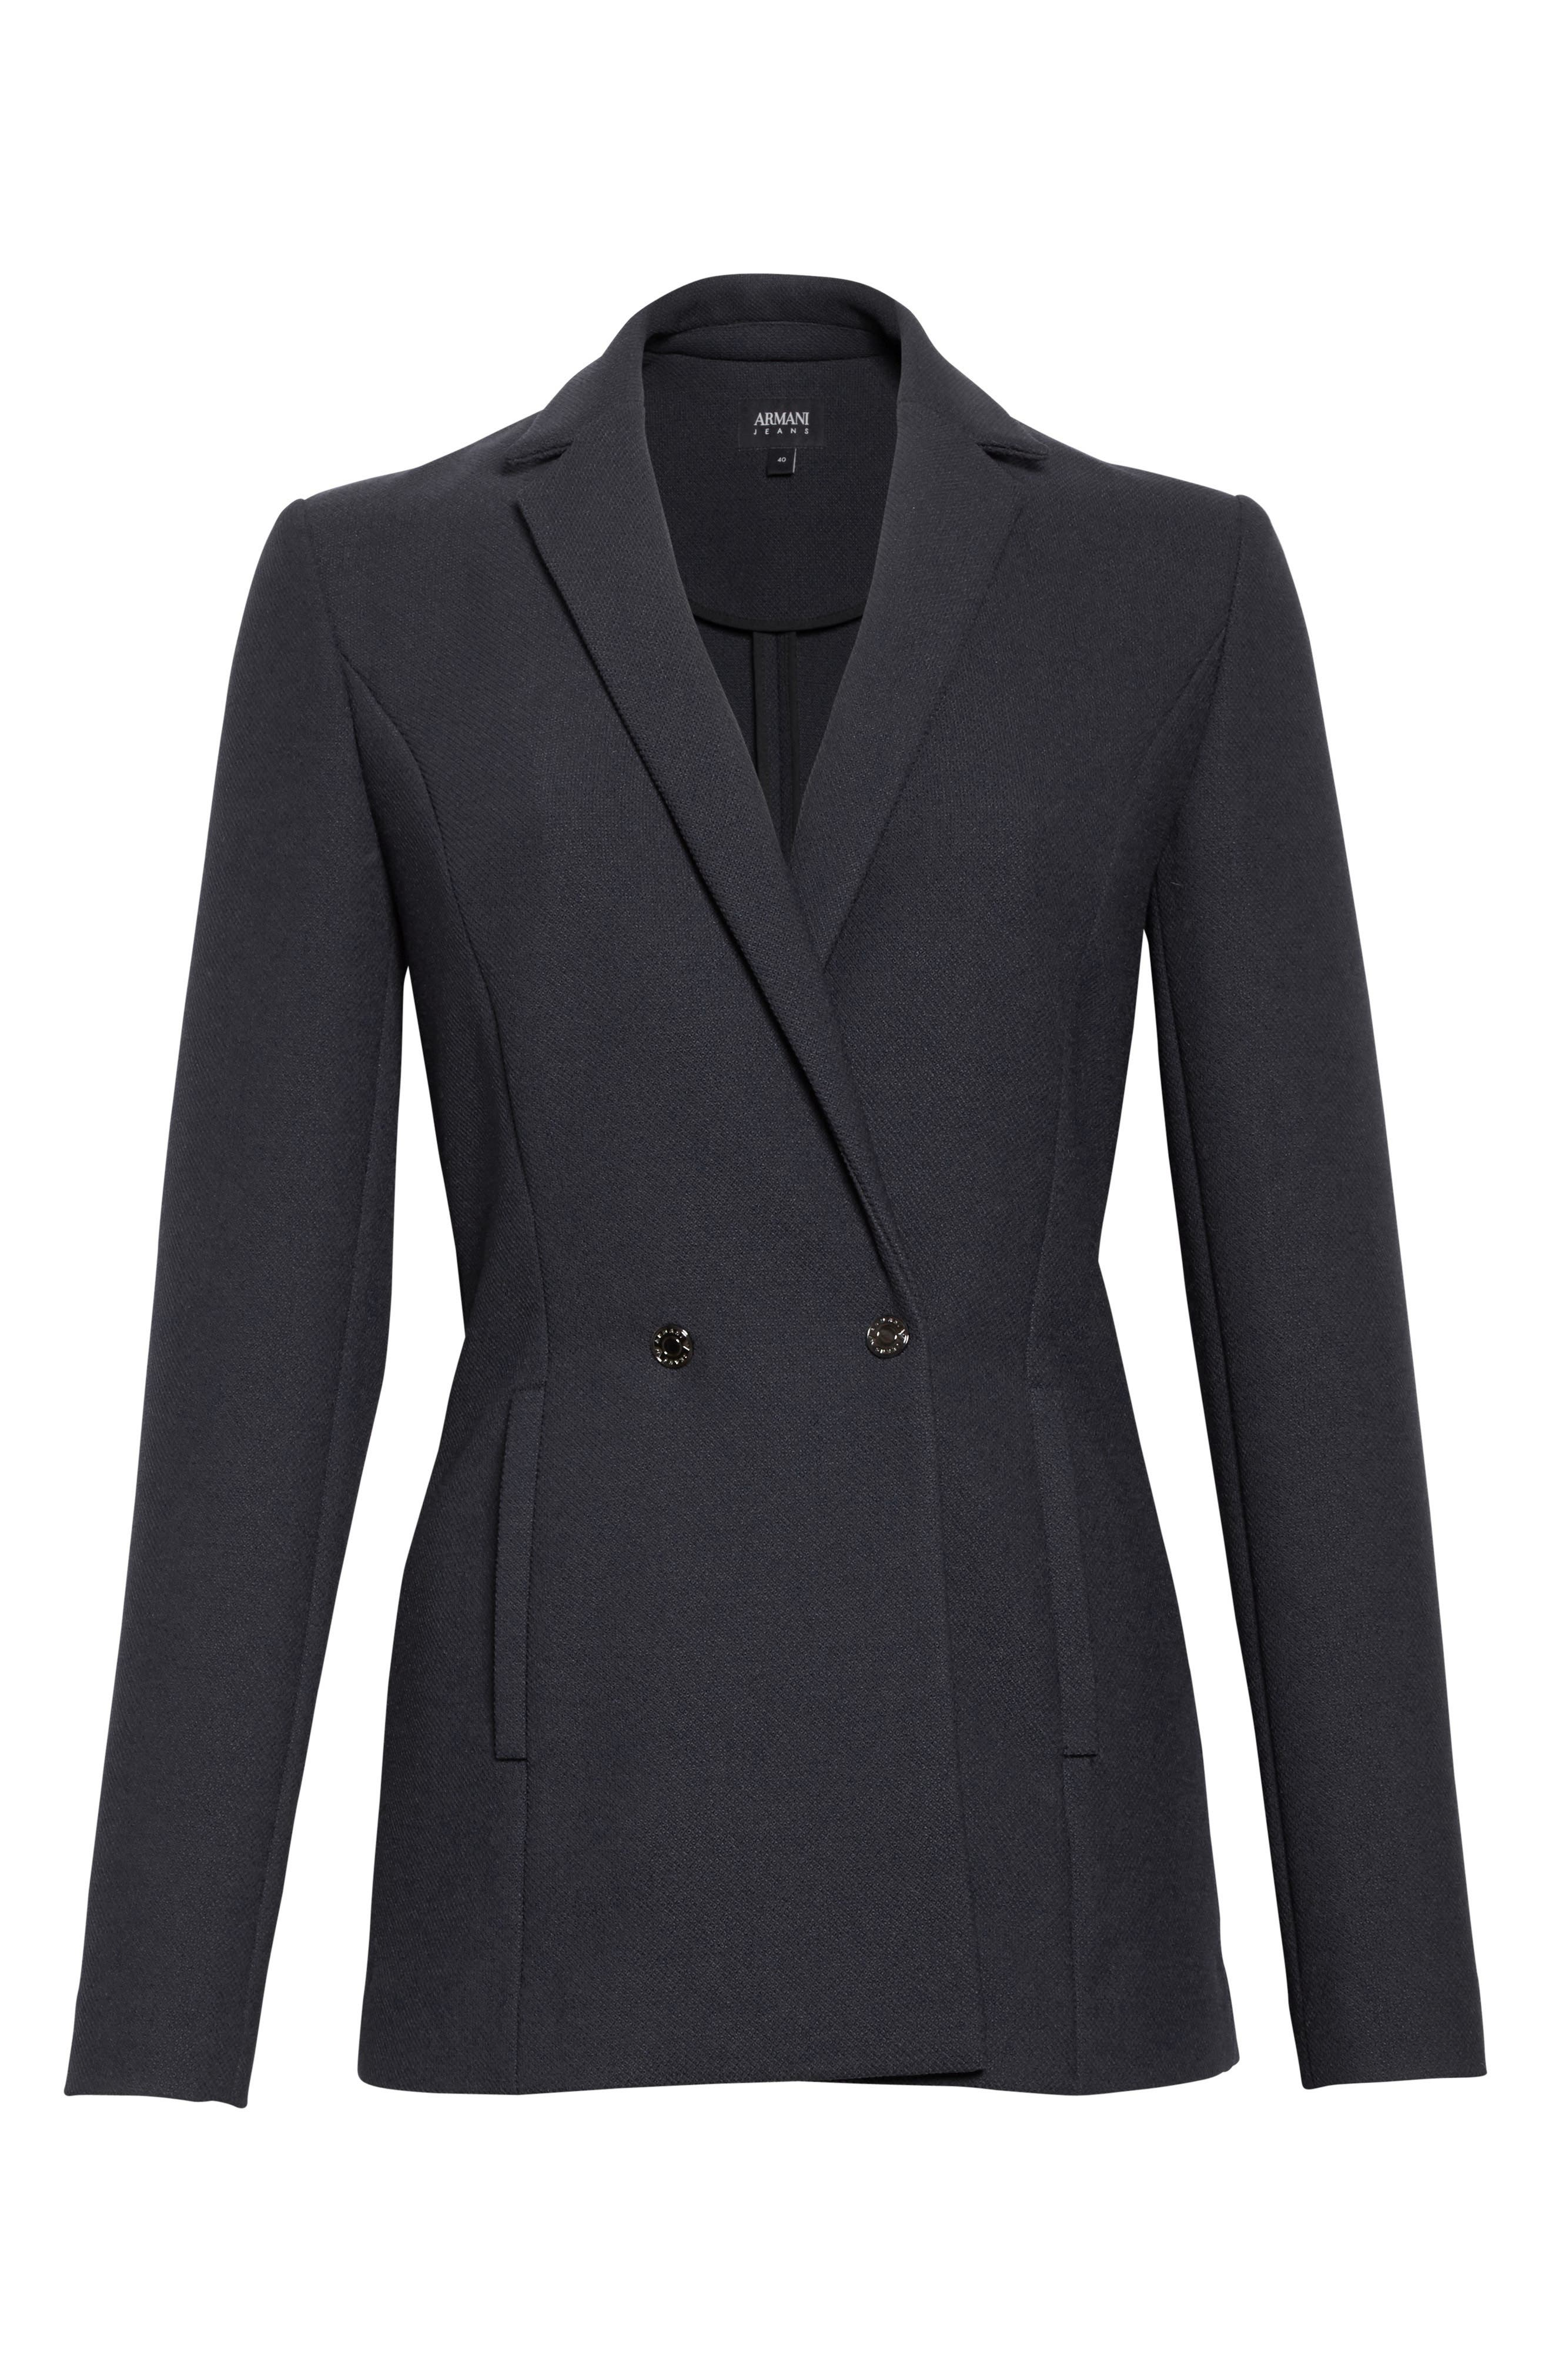 Armani Jeans Piqué Double Breasted Blazer,                             Alternate thumbnail 6, color,                             Navy